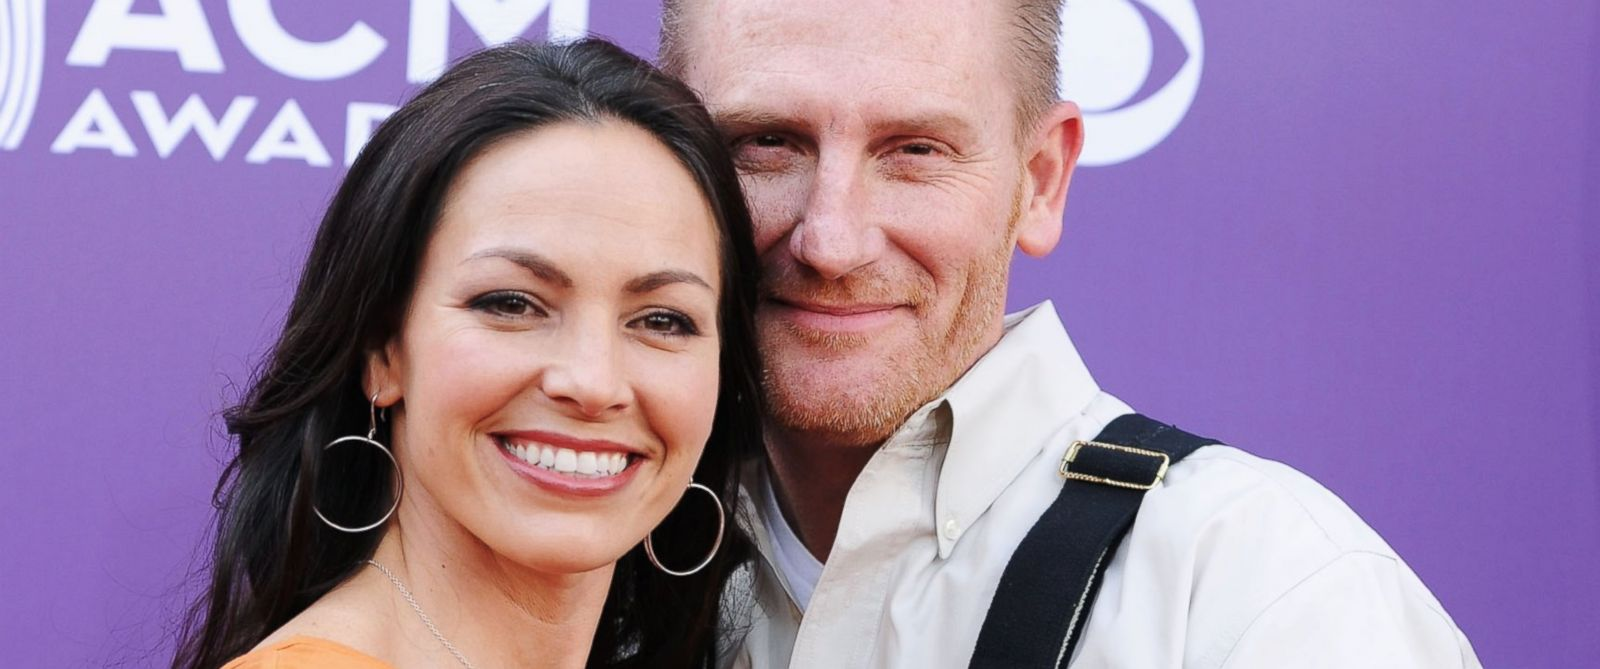 PHOTO: Musicians Rory Lee Feek and Joey Martin Feek of Joey & Rory arrives at the 48th Annual Academy of Country Music Awards, April 7, 2013 in Las Vegas. Nevada.